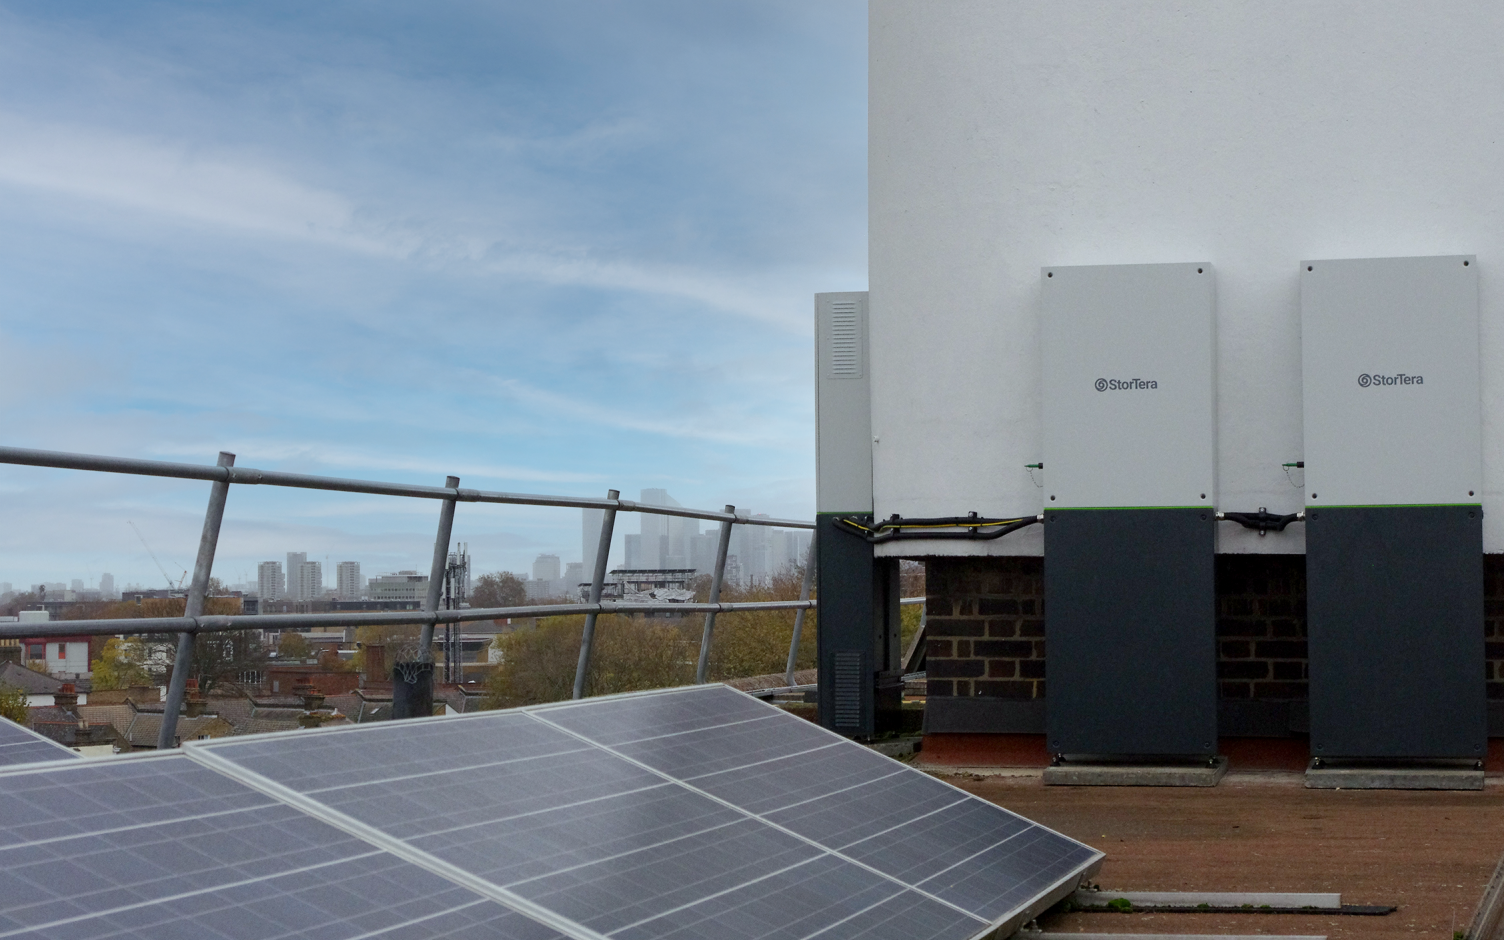 A battery system was recently installed as part of the trial. Image: EDF.